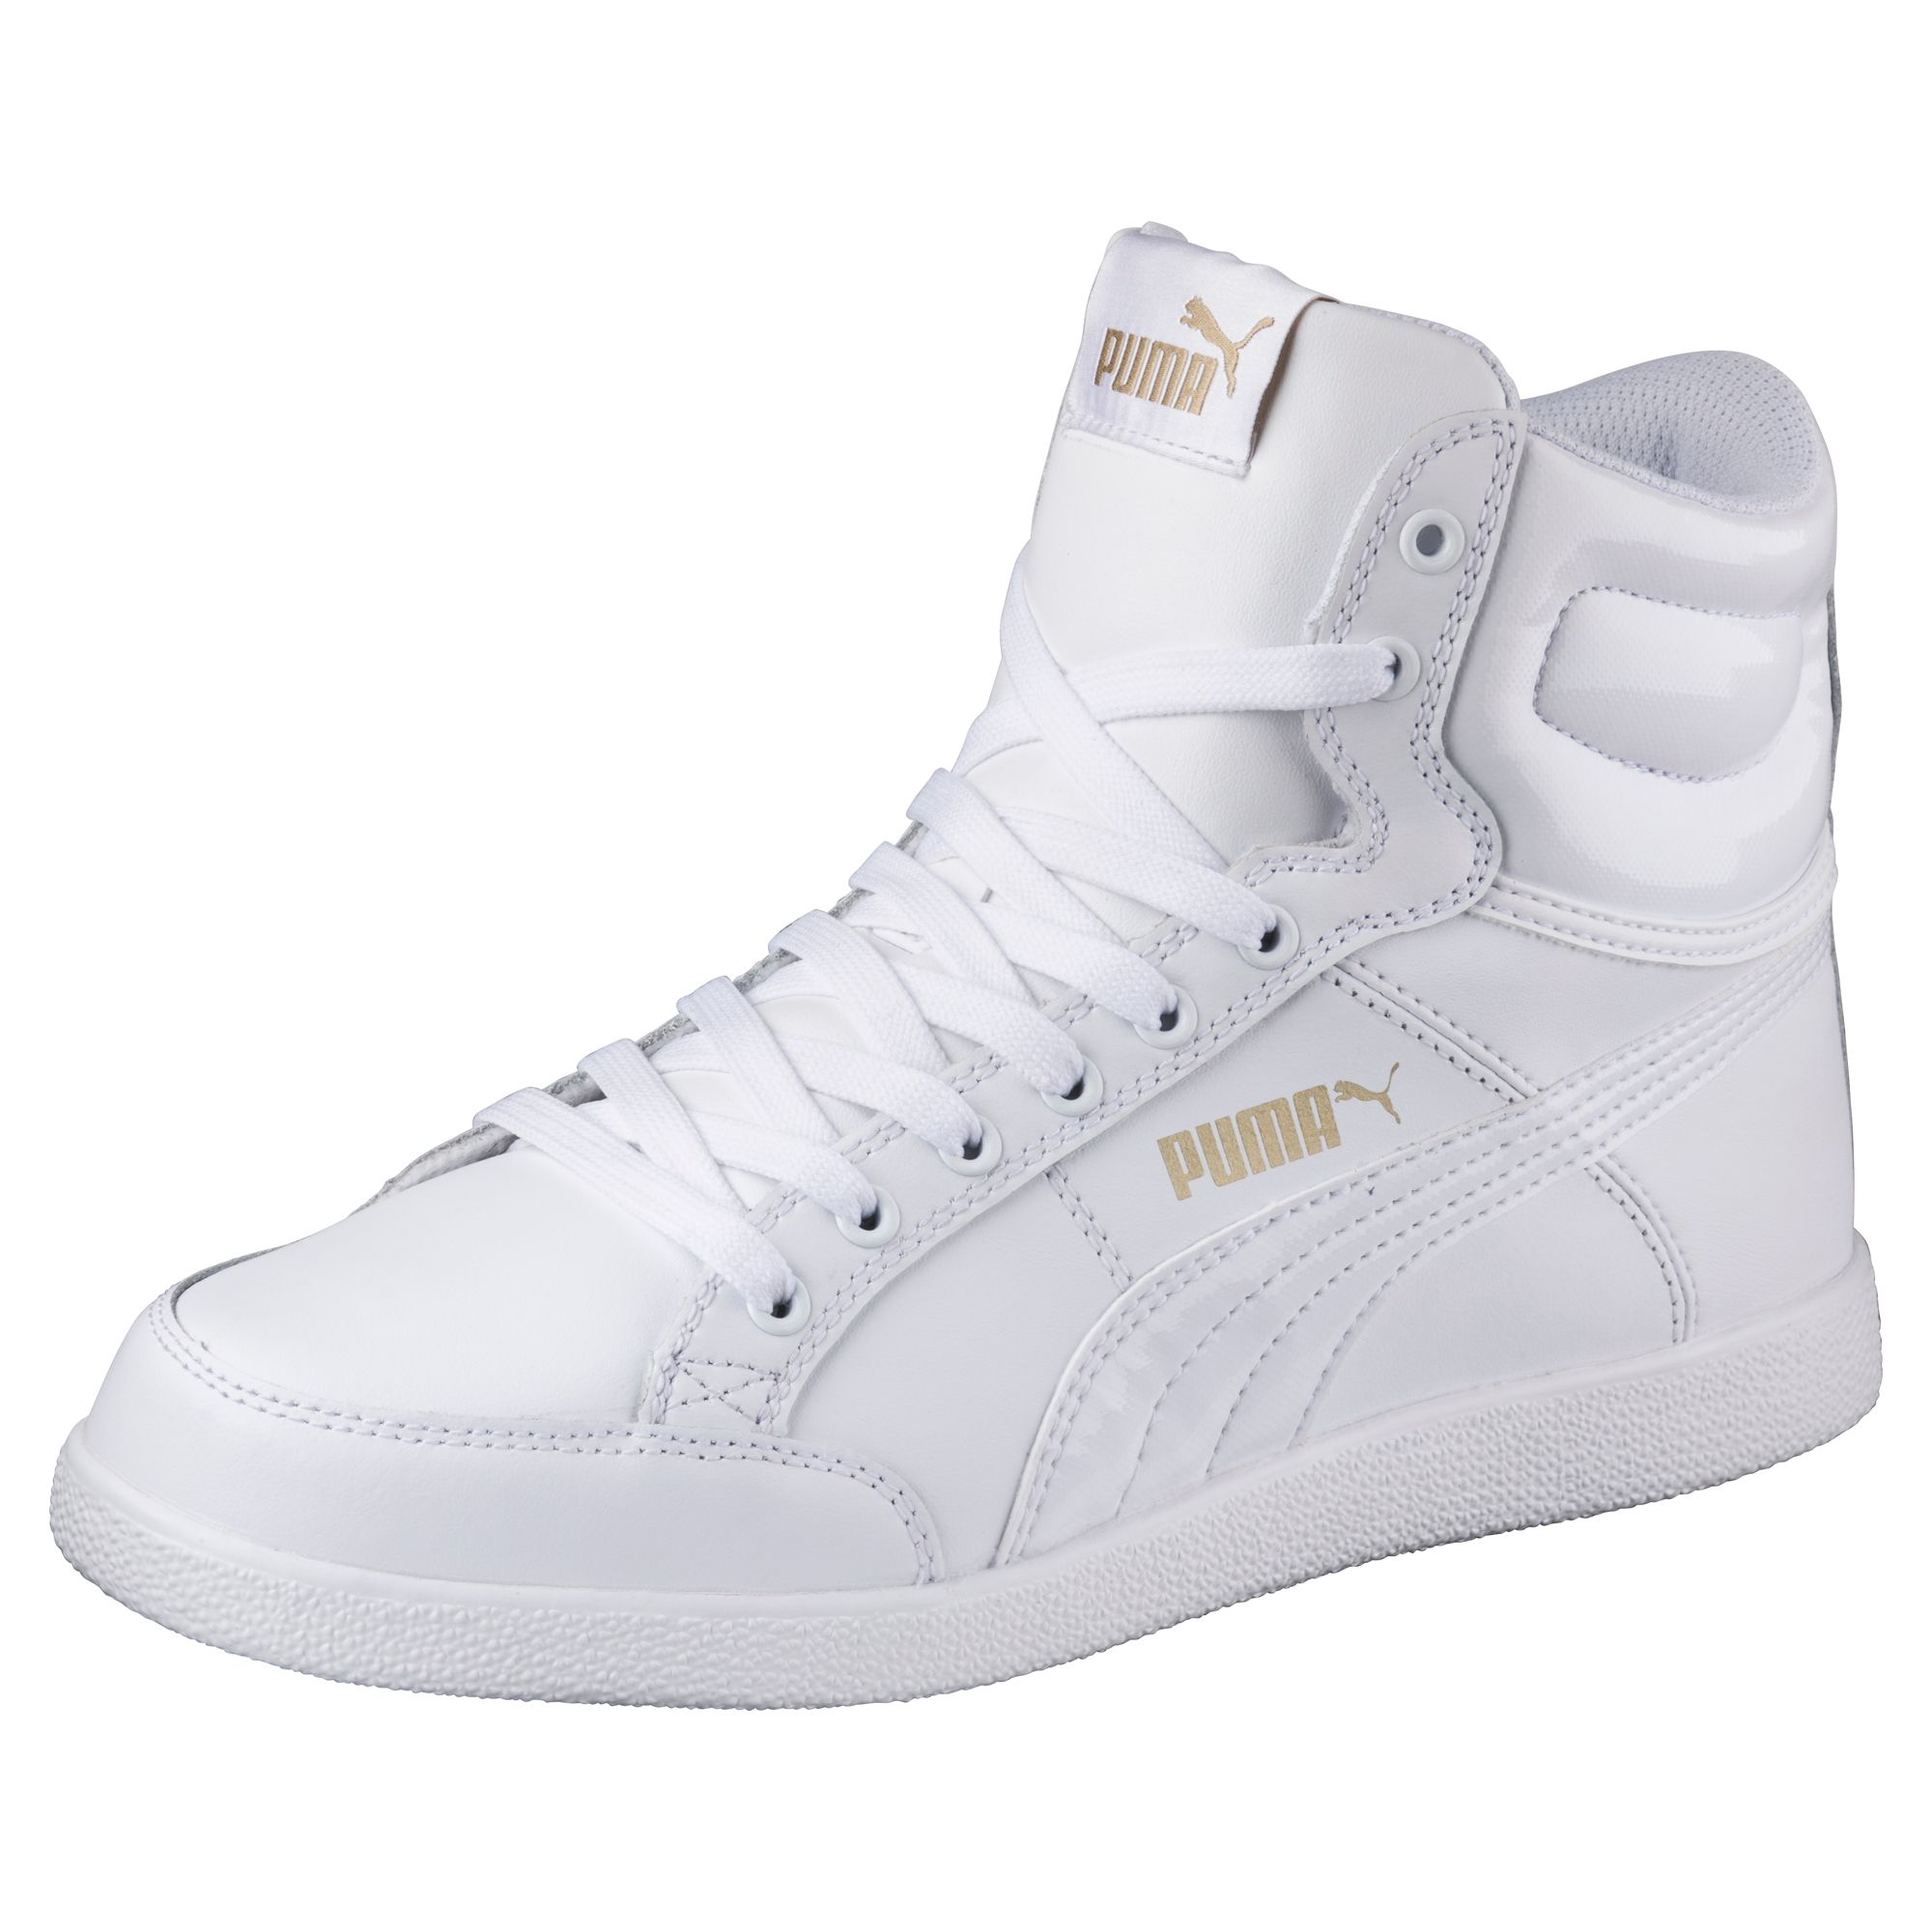 puma high tops womens. puma ikaz mid classic women\u0027s high tops sport classics boot female new. schließen weiter puma womens 0